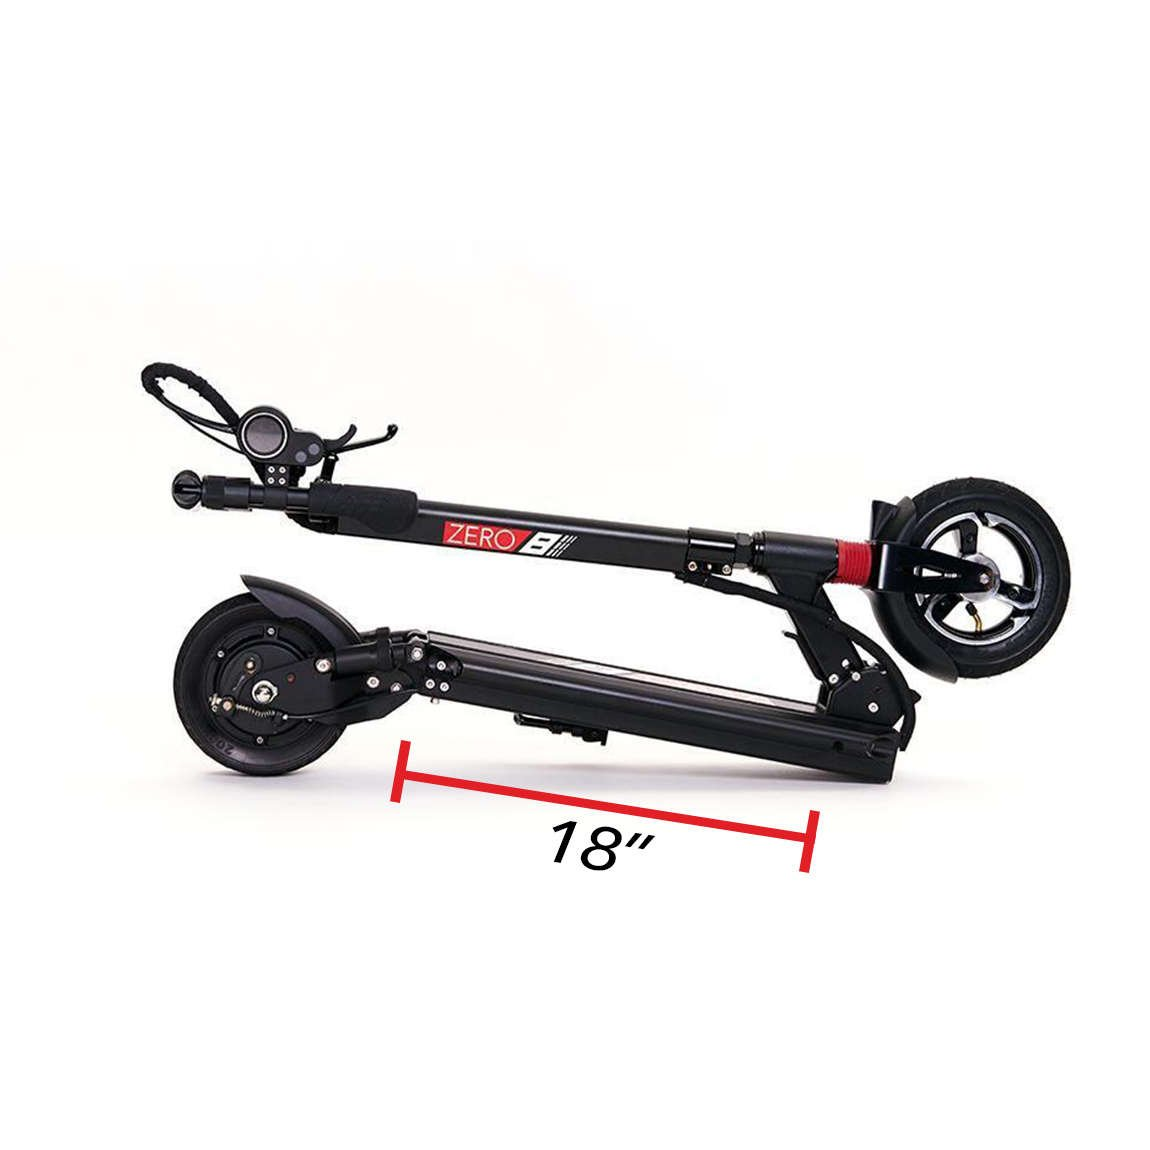 zero 8 electric scooter folded deck length 18 in